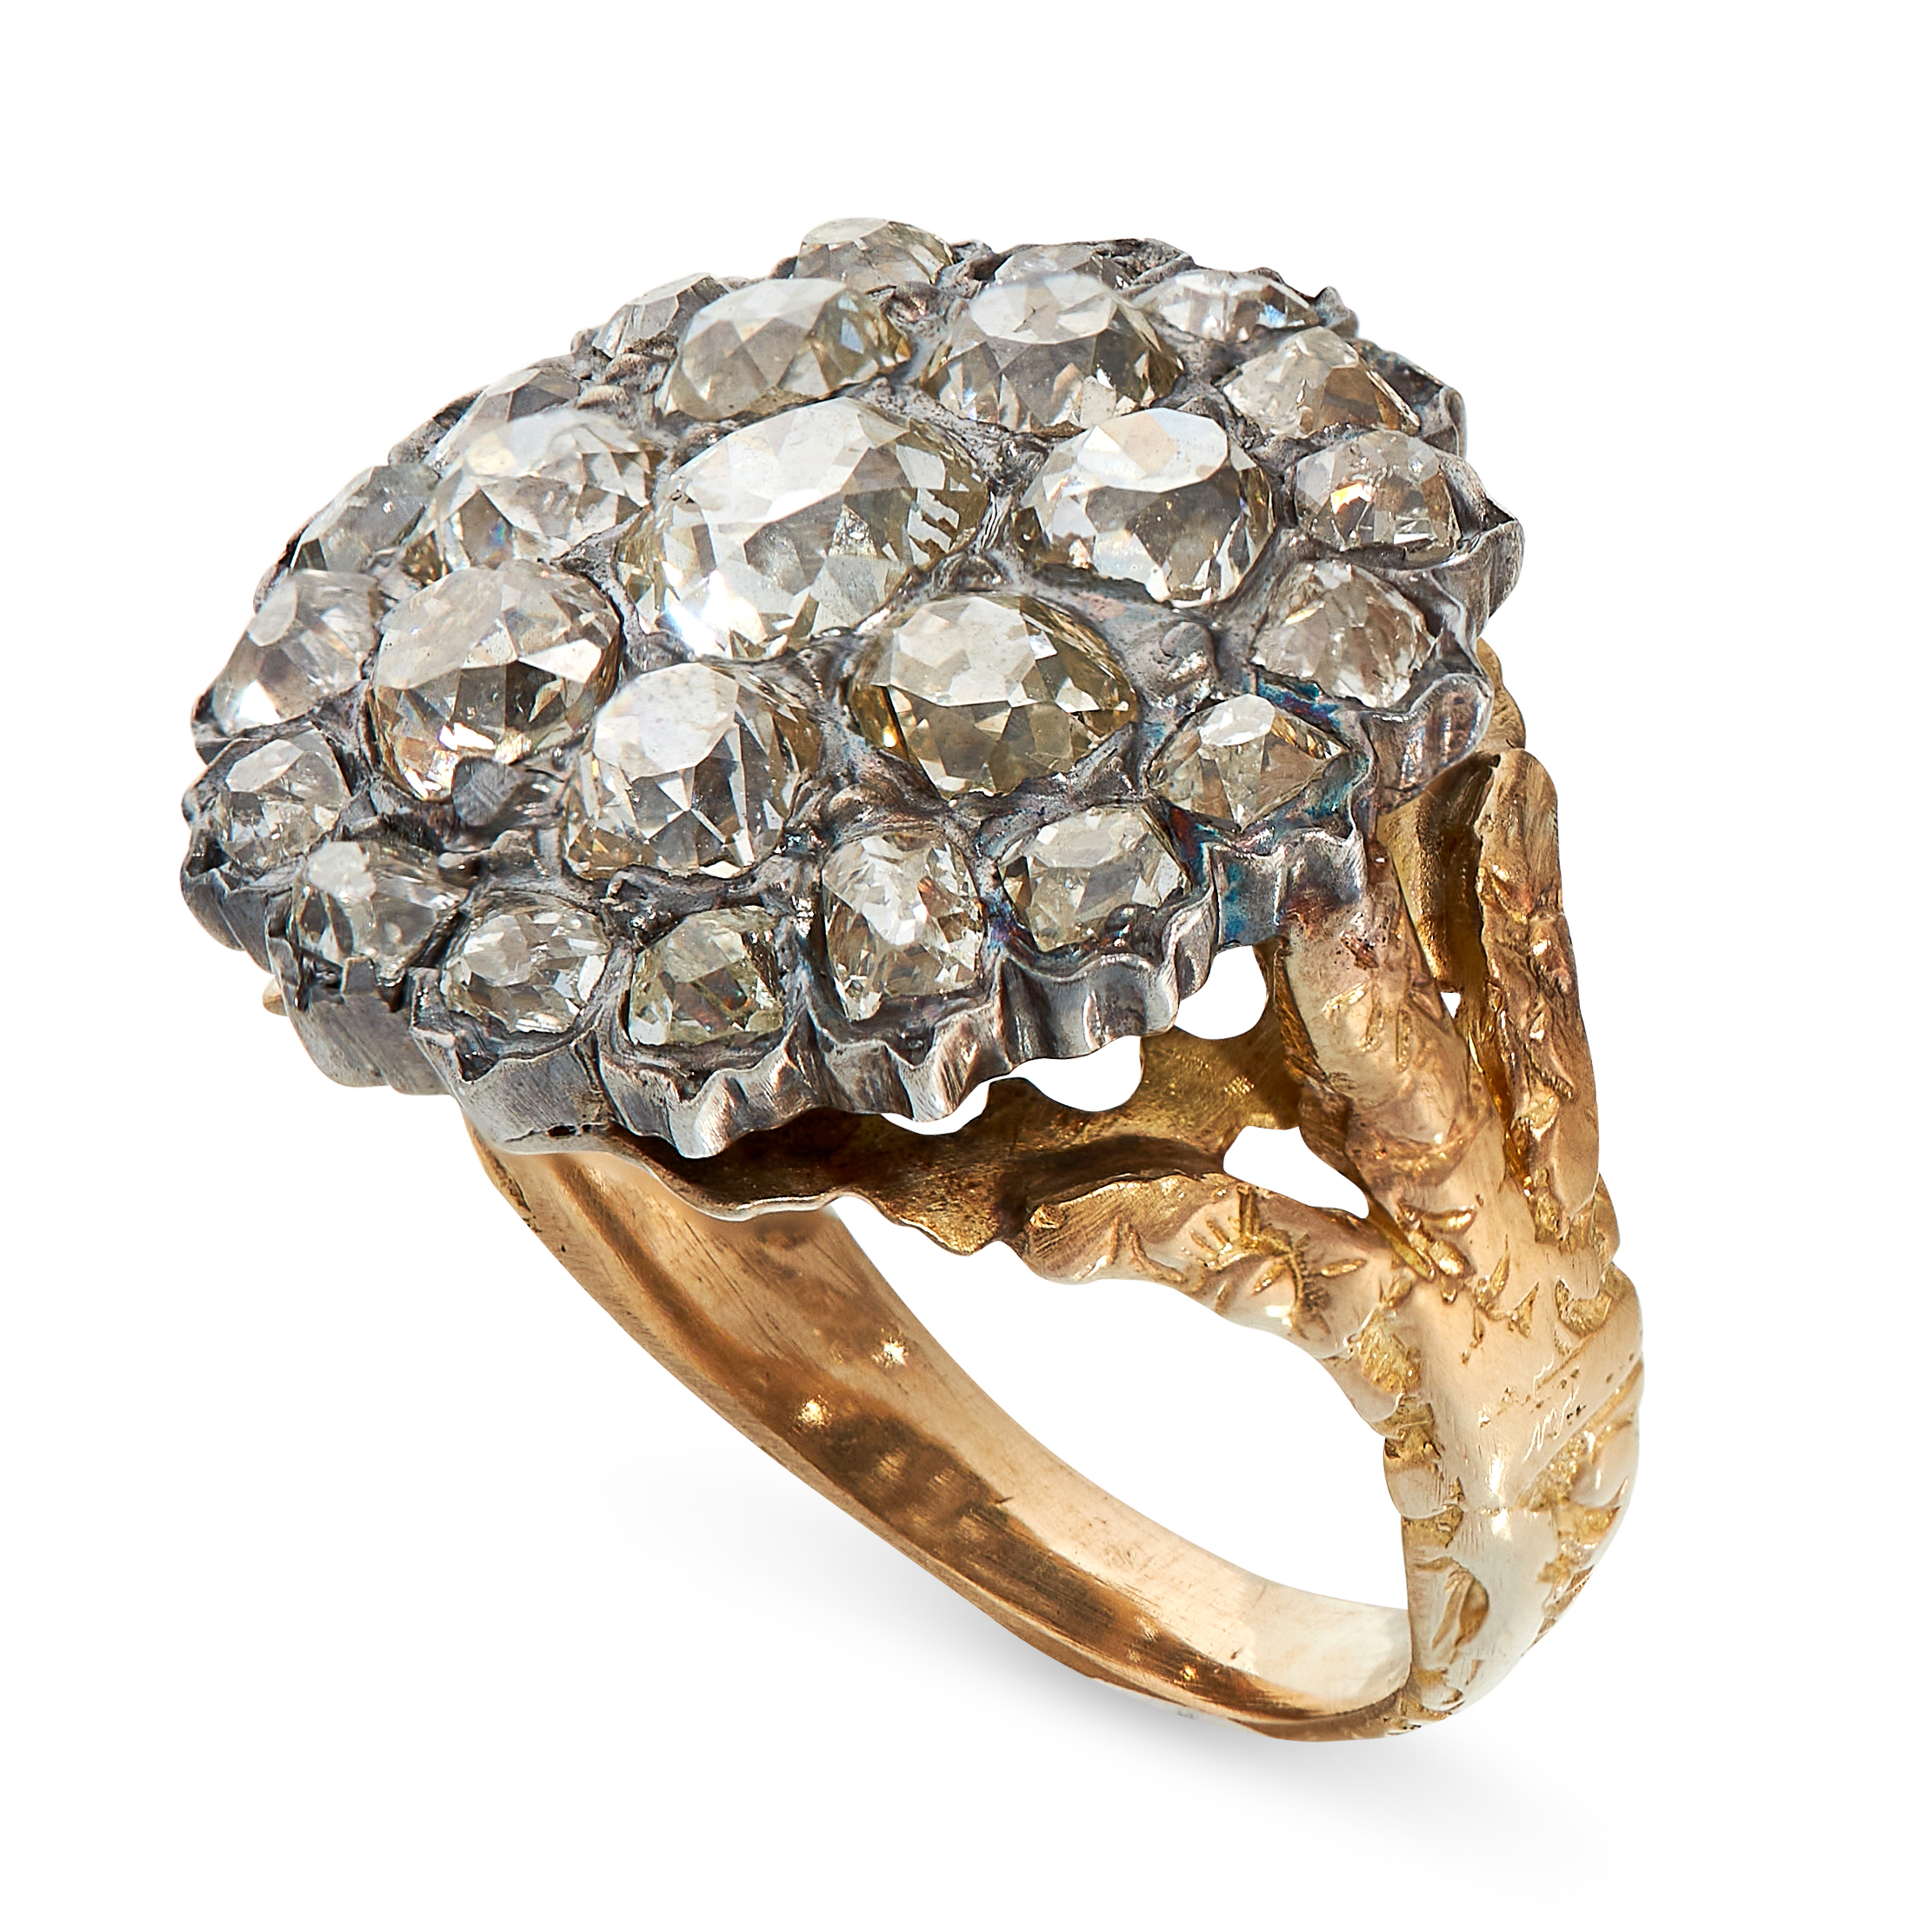 ANTIQUE DIAMOND RING in yellow gold and silver, in cluster form set with old cut diamonds, all - Image 2 of 2